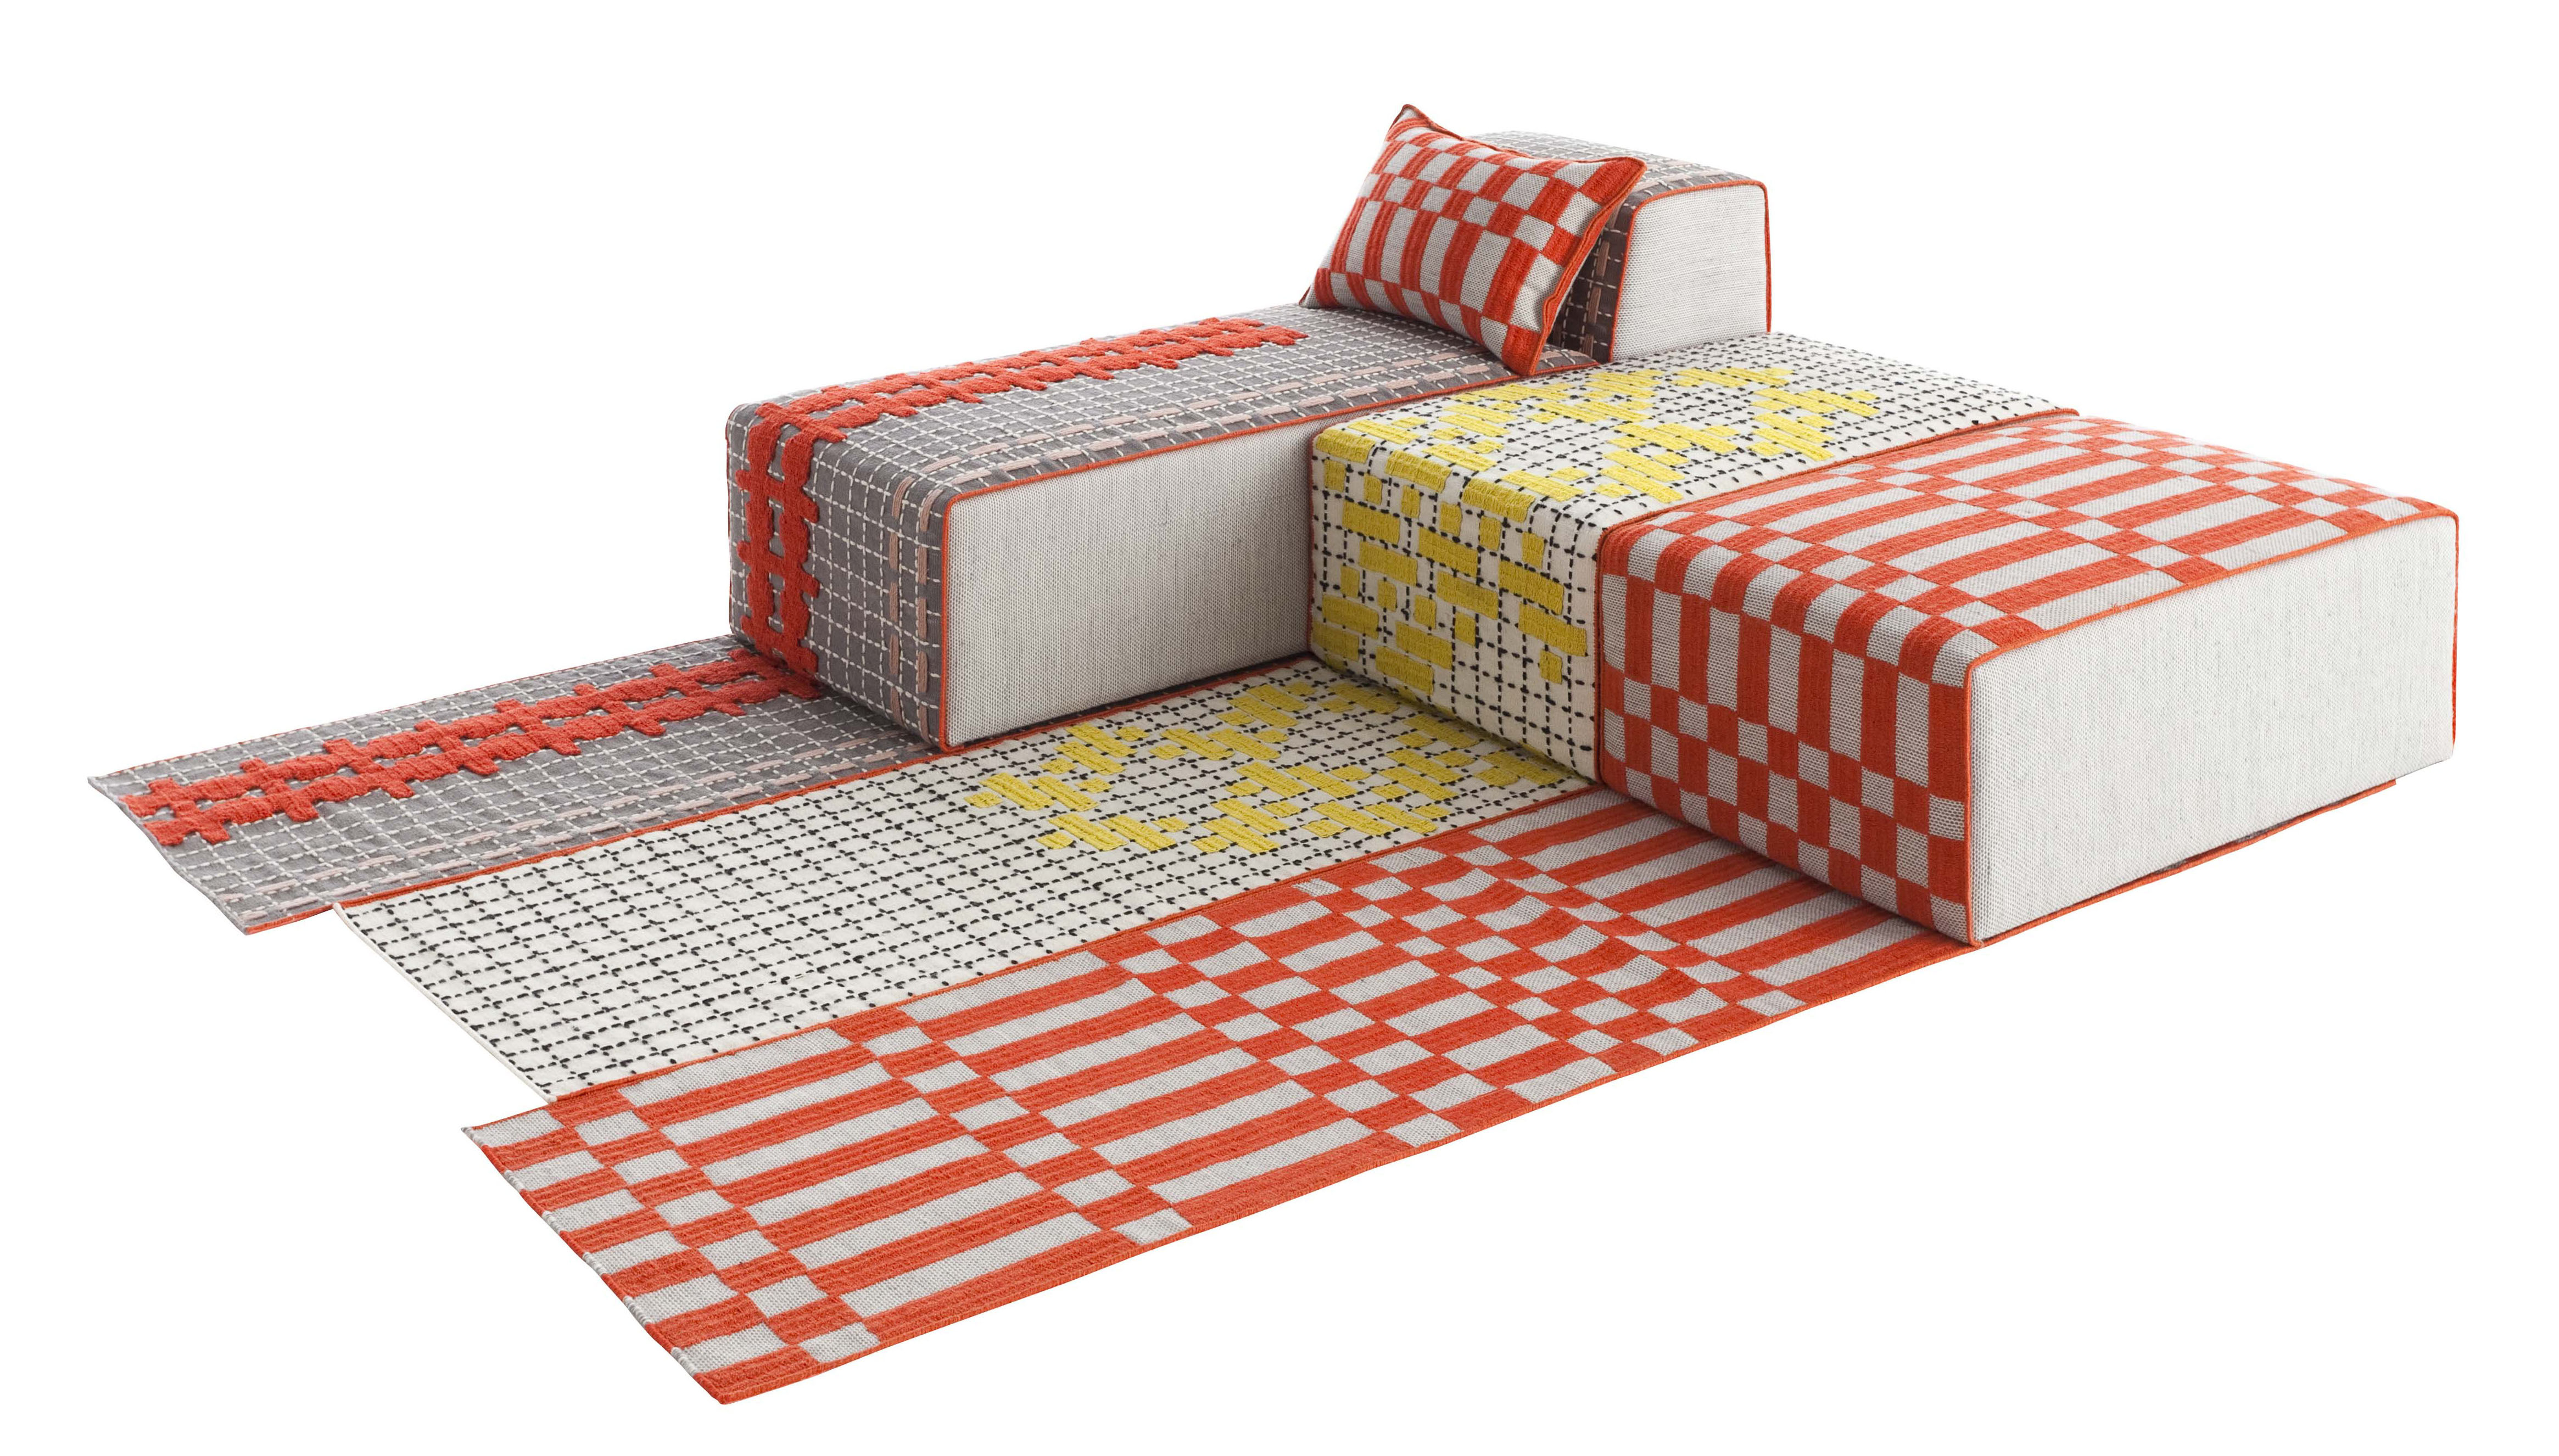 N 2 bandas collection 1 rug 2 poufs large 1 chaise for Chaise longue orange